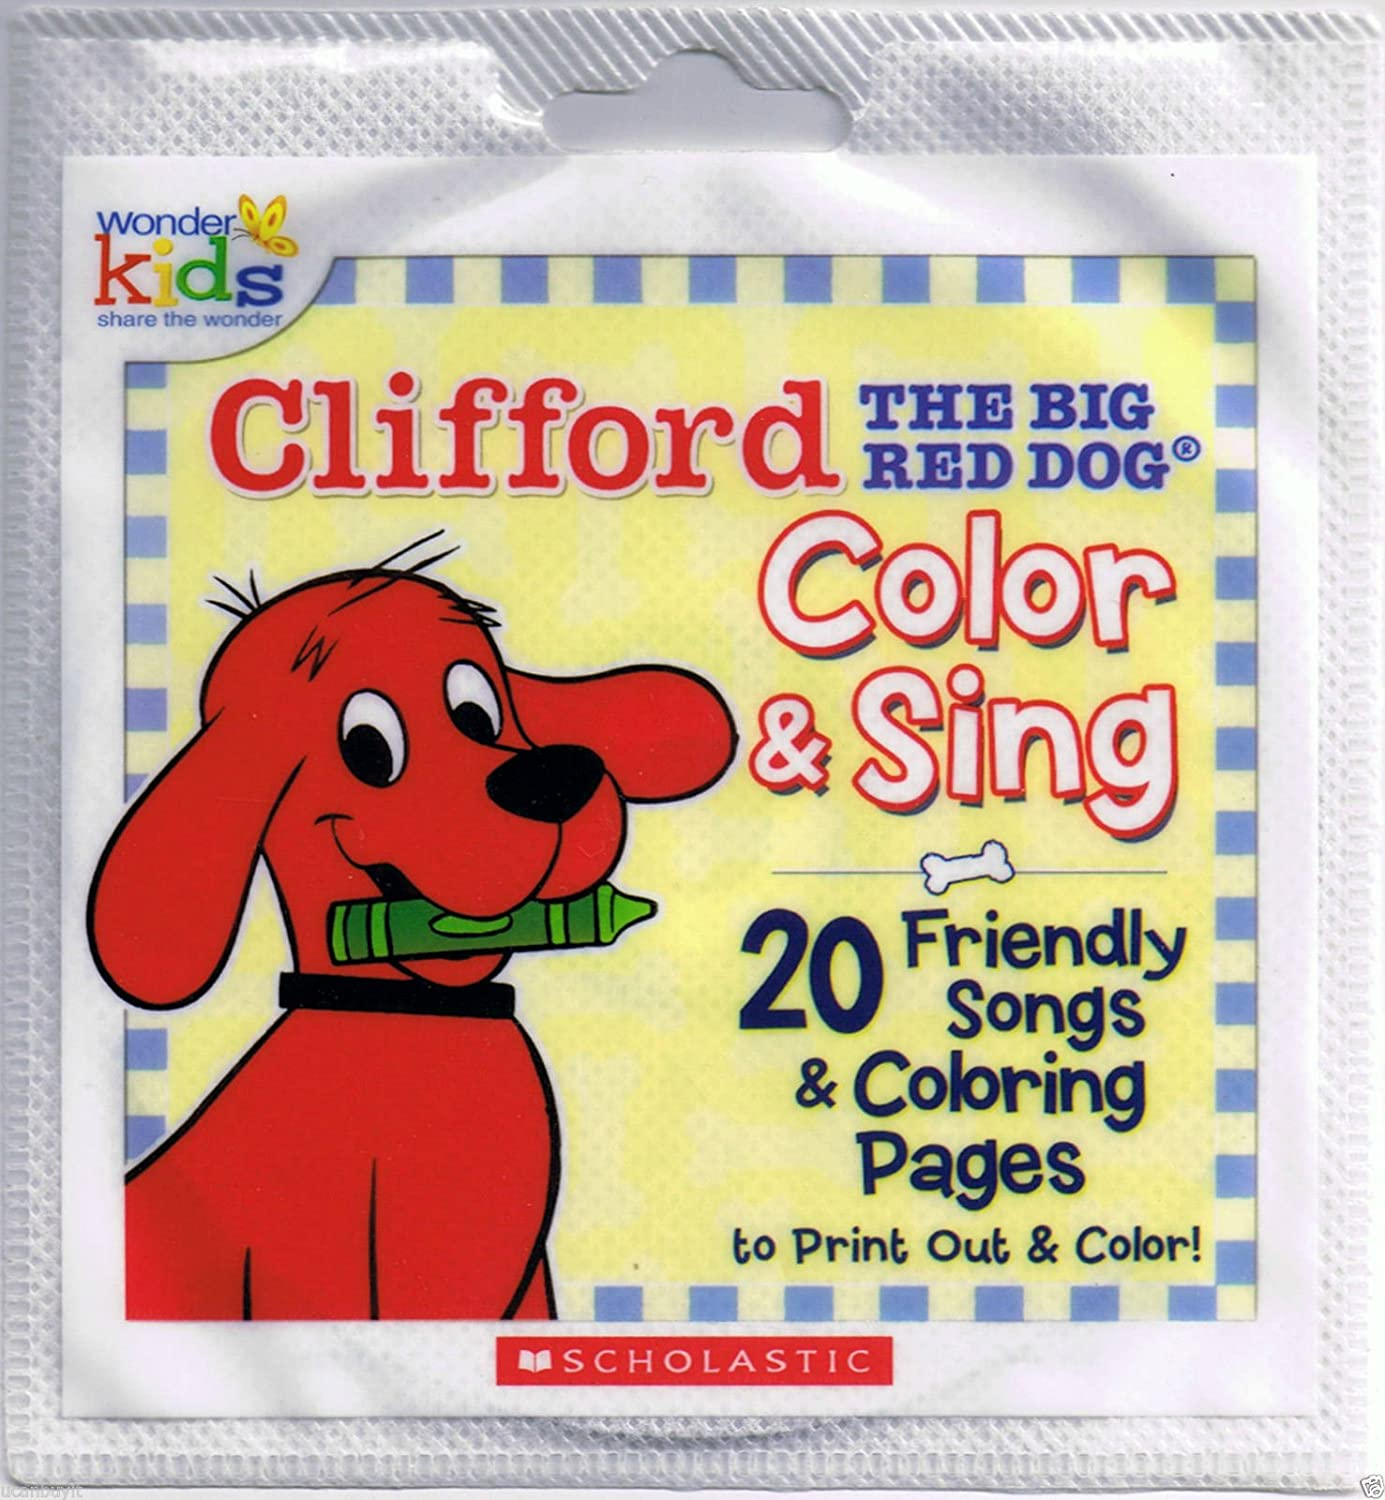 Wonder Kids - Clifford the Big Red Dog: Color & Sing - 20 Friendly ...